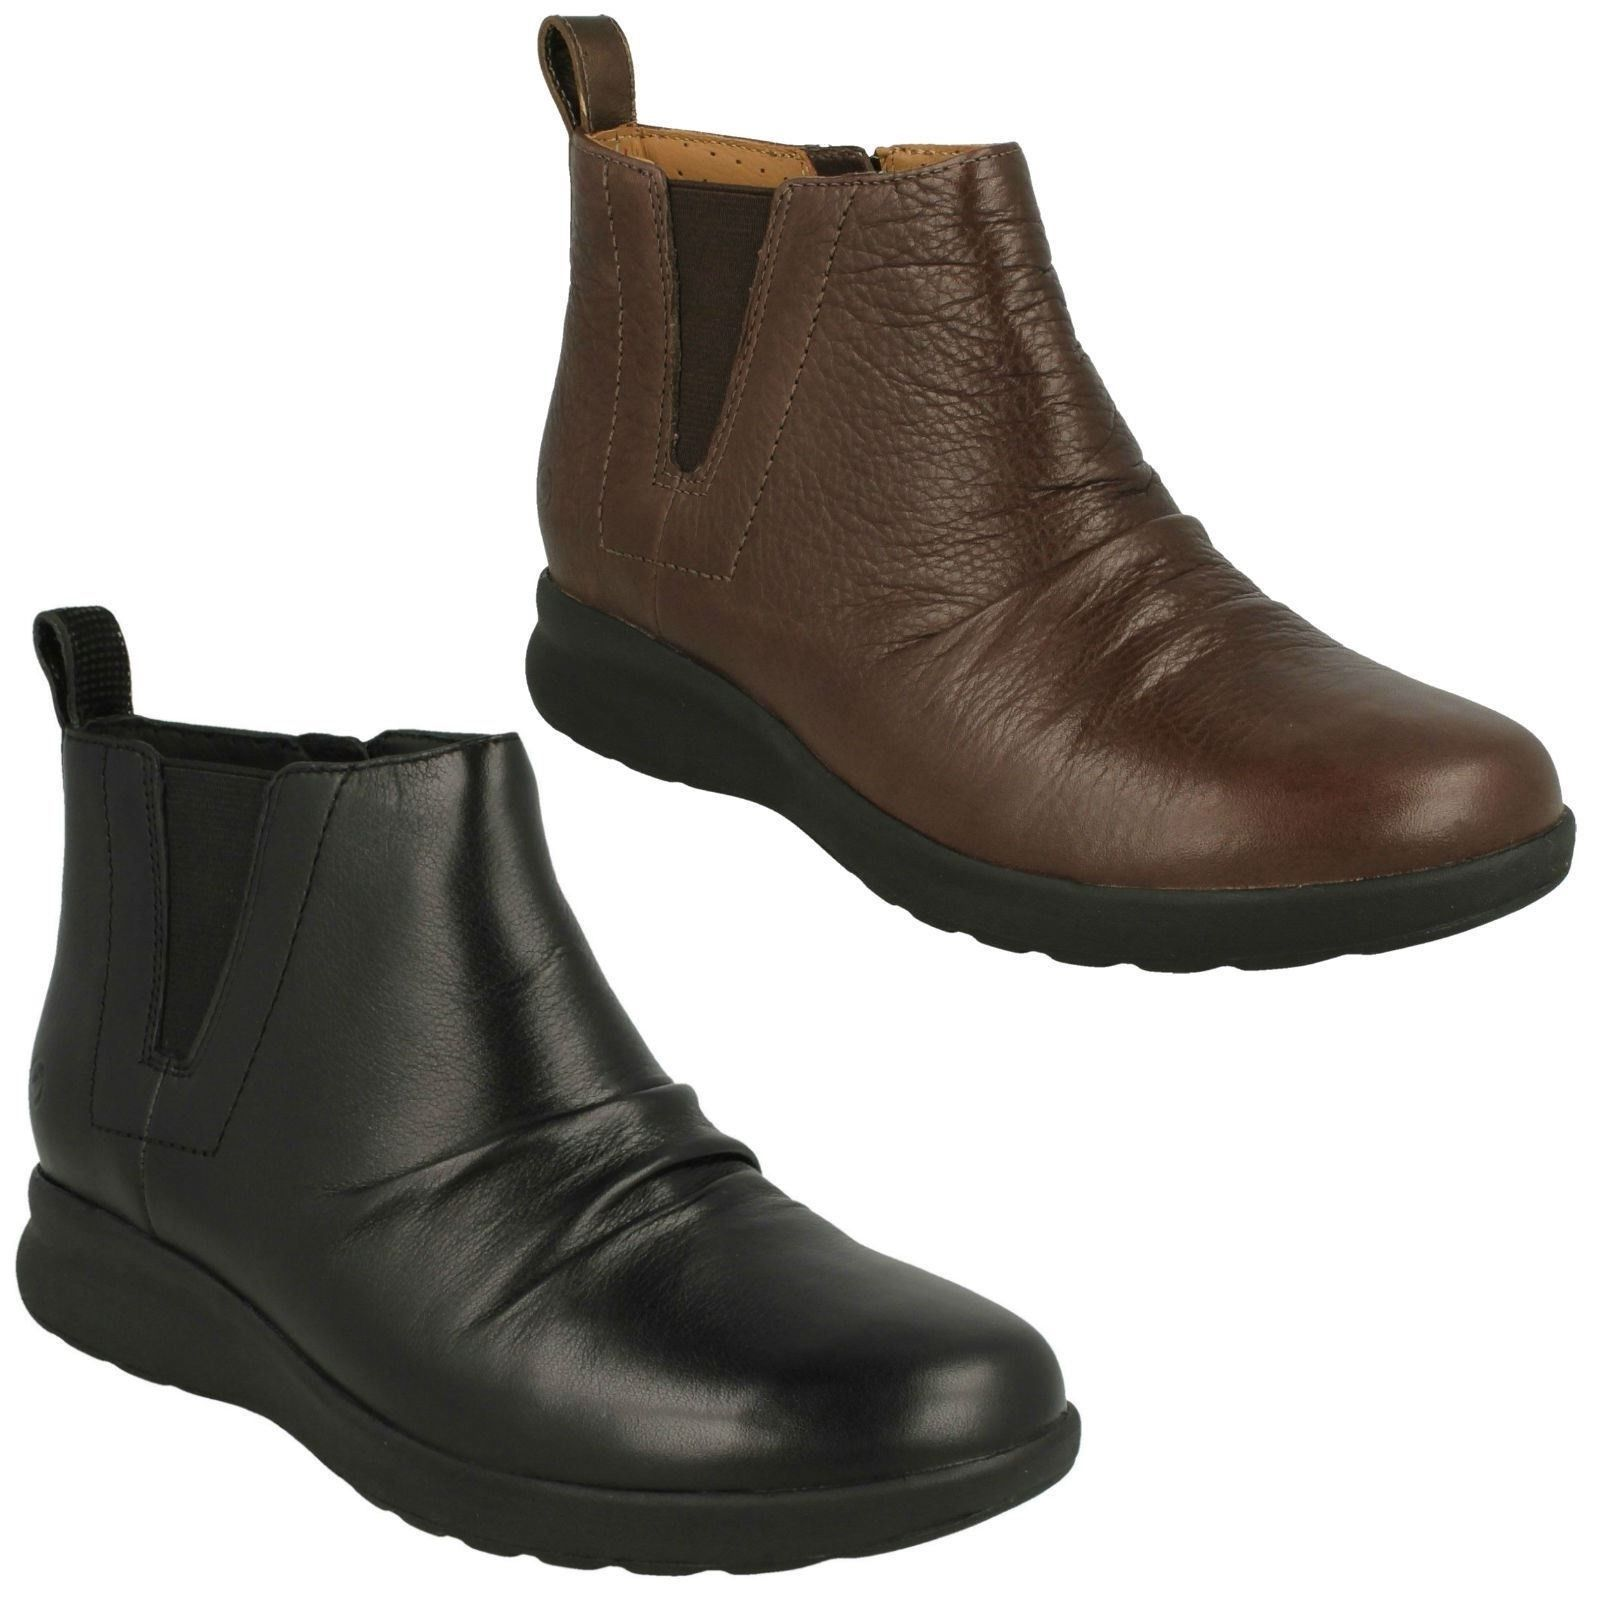 UN ADORN MID LADIES UNSTRUCTUrot Clerchen ZIP LEATHER  EVERYDAY ANKLE CASUAL Stiefel